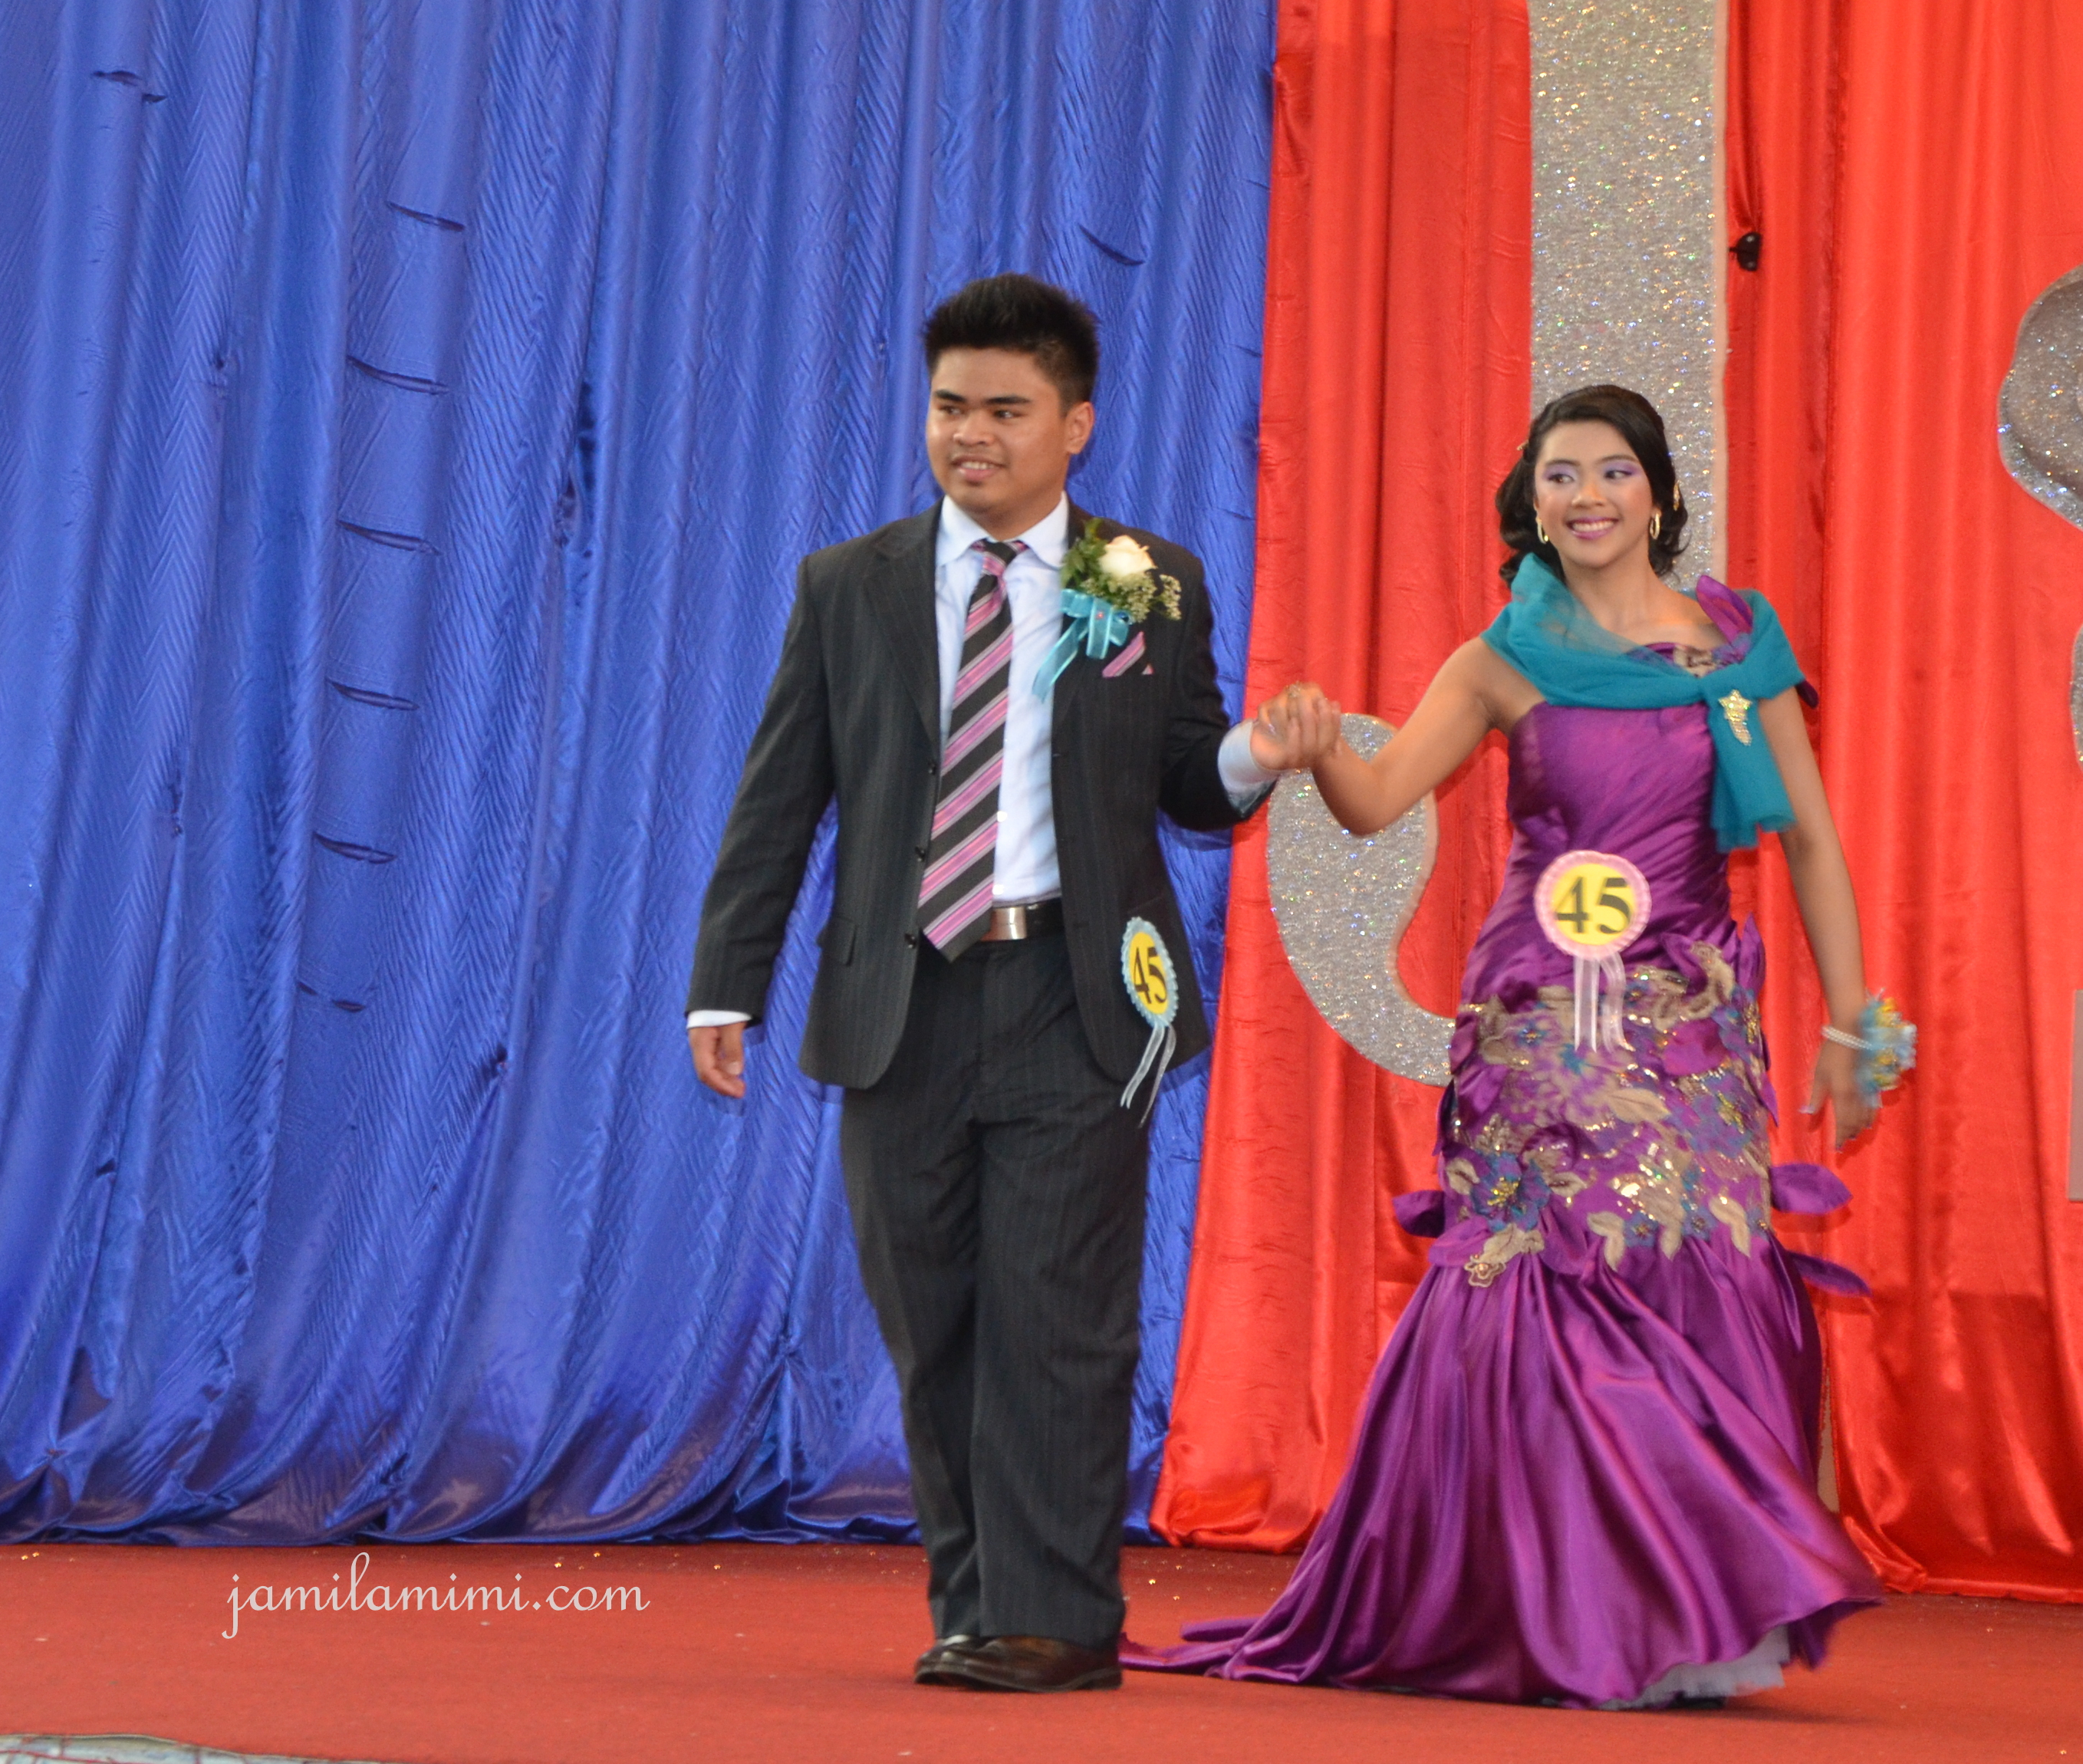 a night to remember js prom essay Lunch break – 061518 40 weird pictures, gifs and memes that are just waiting for happy hour.